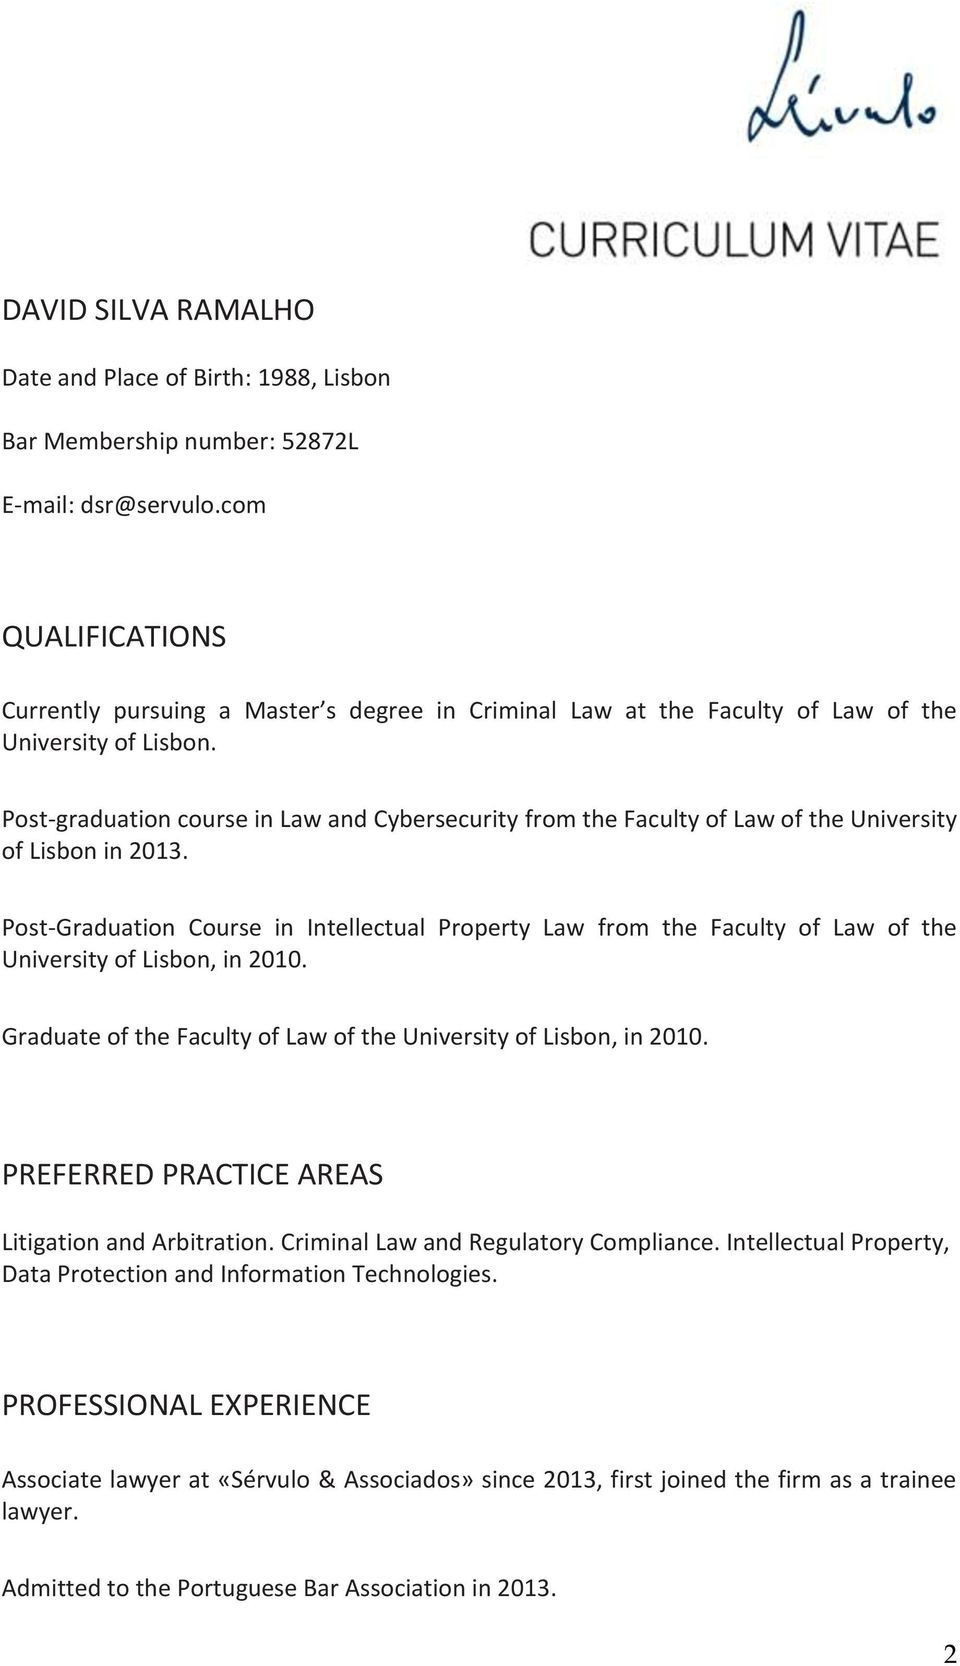 Post-graduation course in Law and Cybersecurity from the Faculty of Law of the University of Lisbon in 2013.